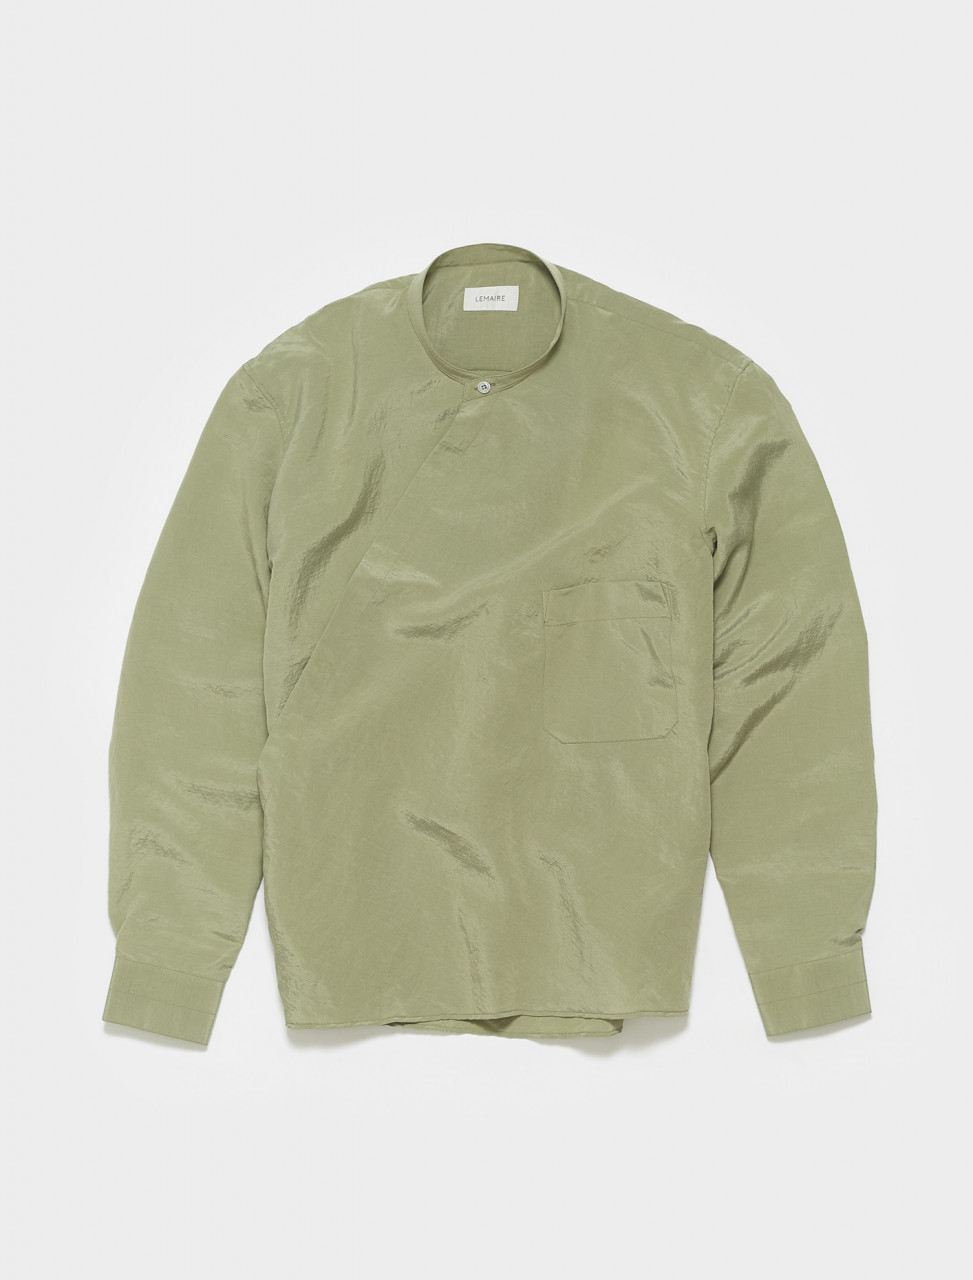 X-211-SH164-LF208-609 LEMAIRE WRAPOVER SHIRT IN SAGE